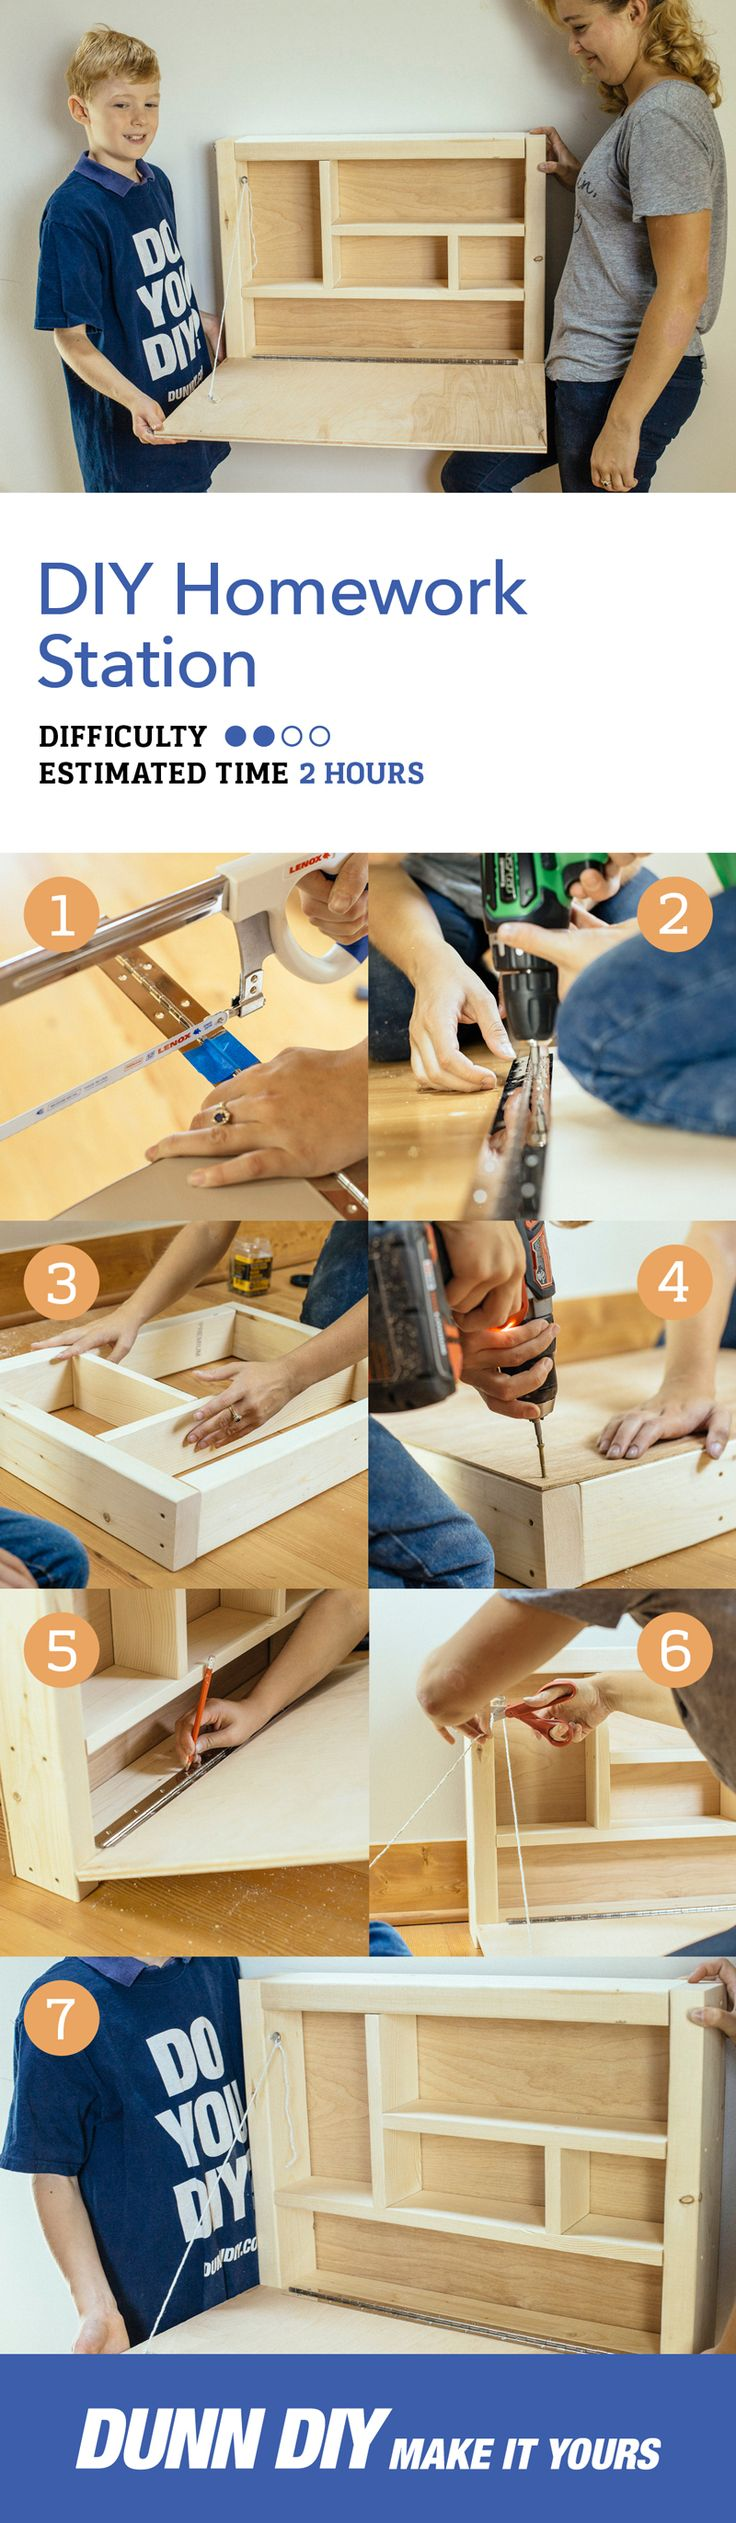 It's that time of year again. Book reports, long division, and art projects. We've created a fun diy homework station that's a perfect fall weekend project. This desk is easy to make, takes up minimal space, and provides a personal little nook for your student to do homework.